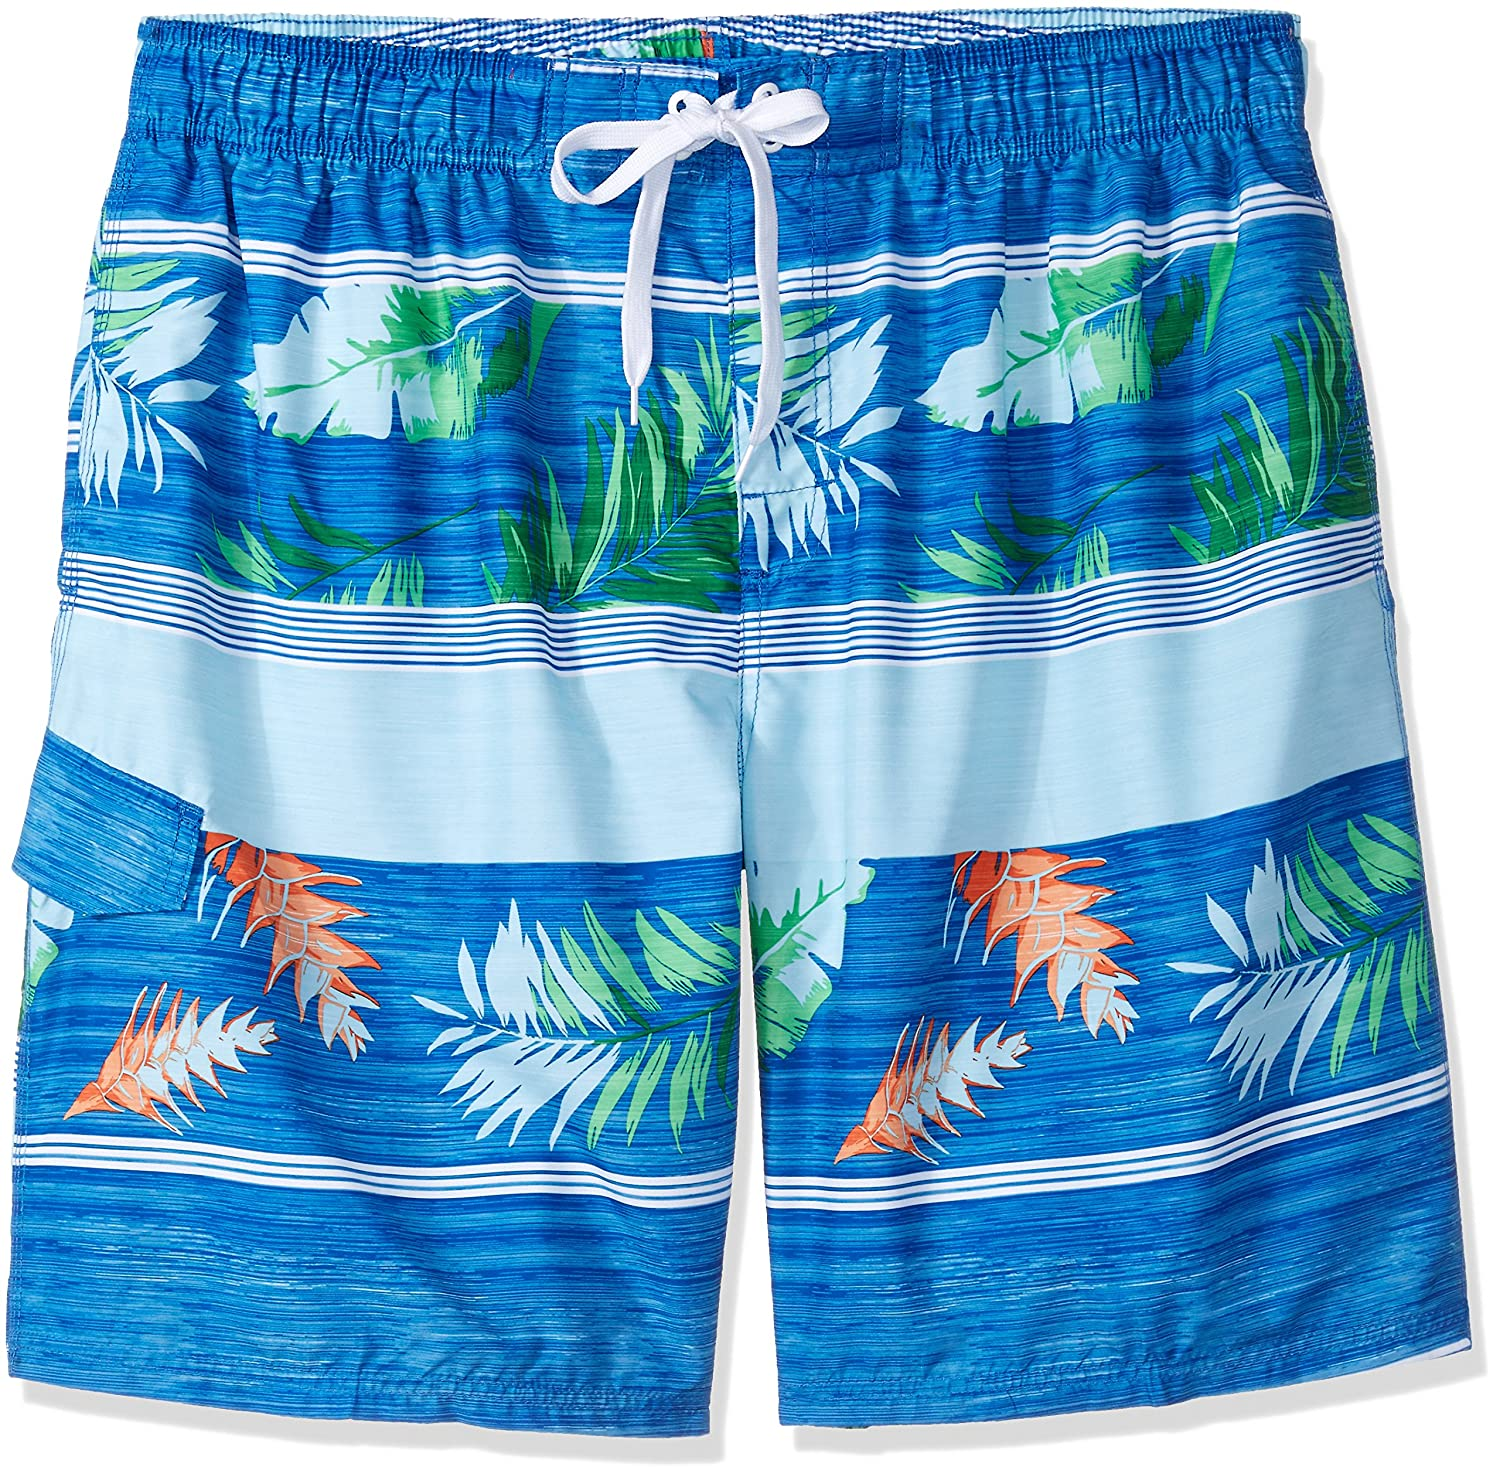 Kanu Surf Men's Big Condor Extended Size Stripe Floral Swim Trunk Kanu Surf Men's Swimwear 4451X